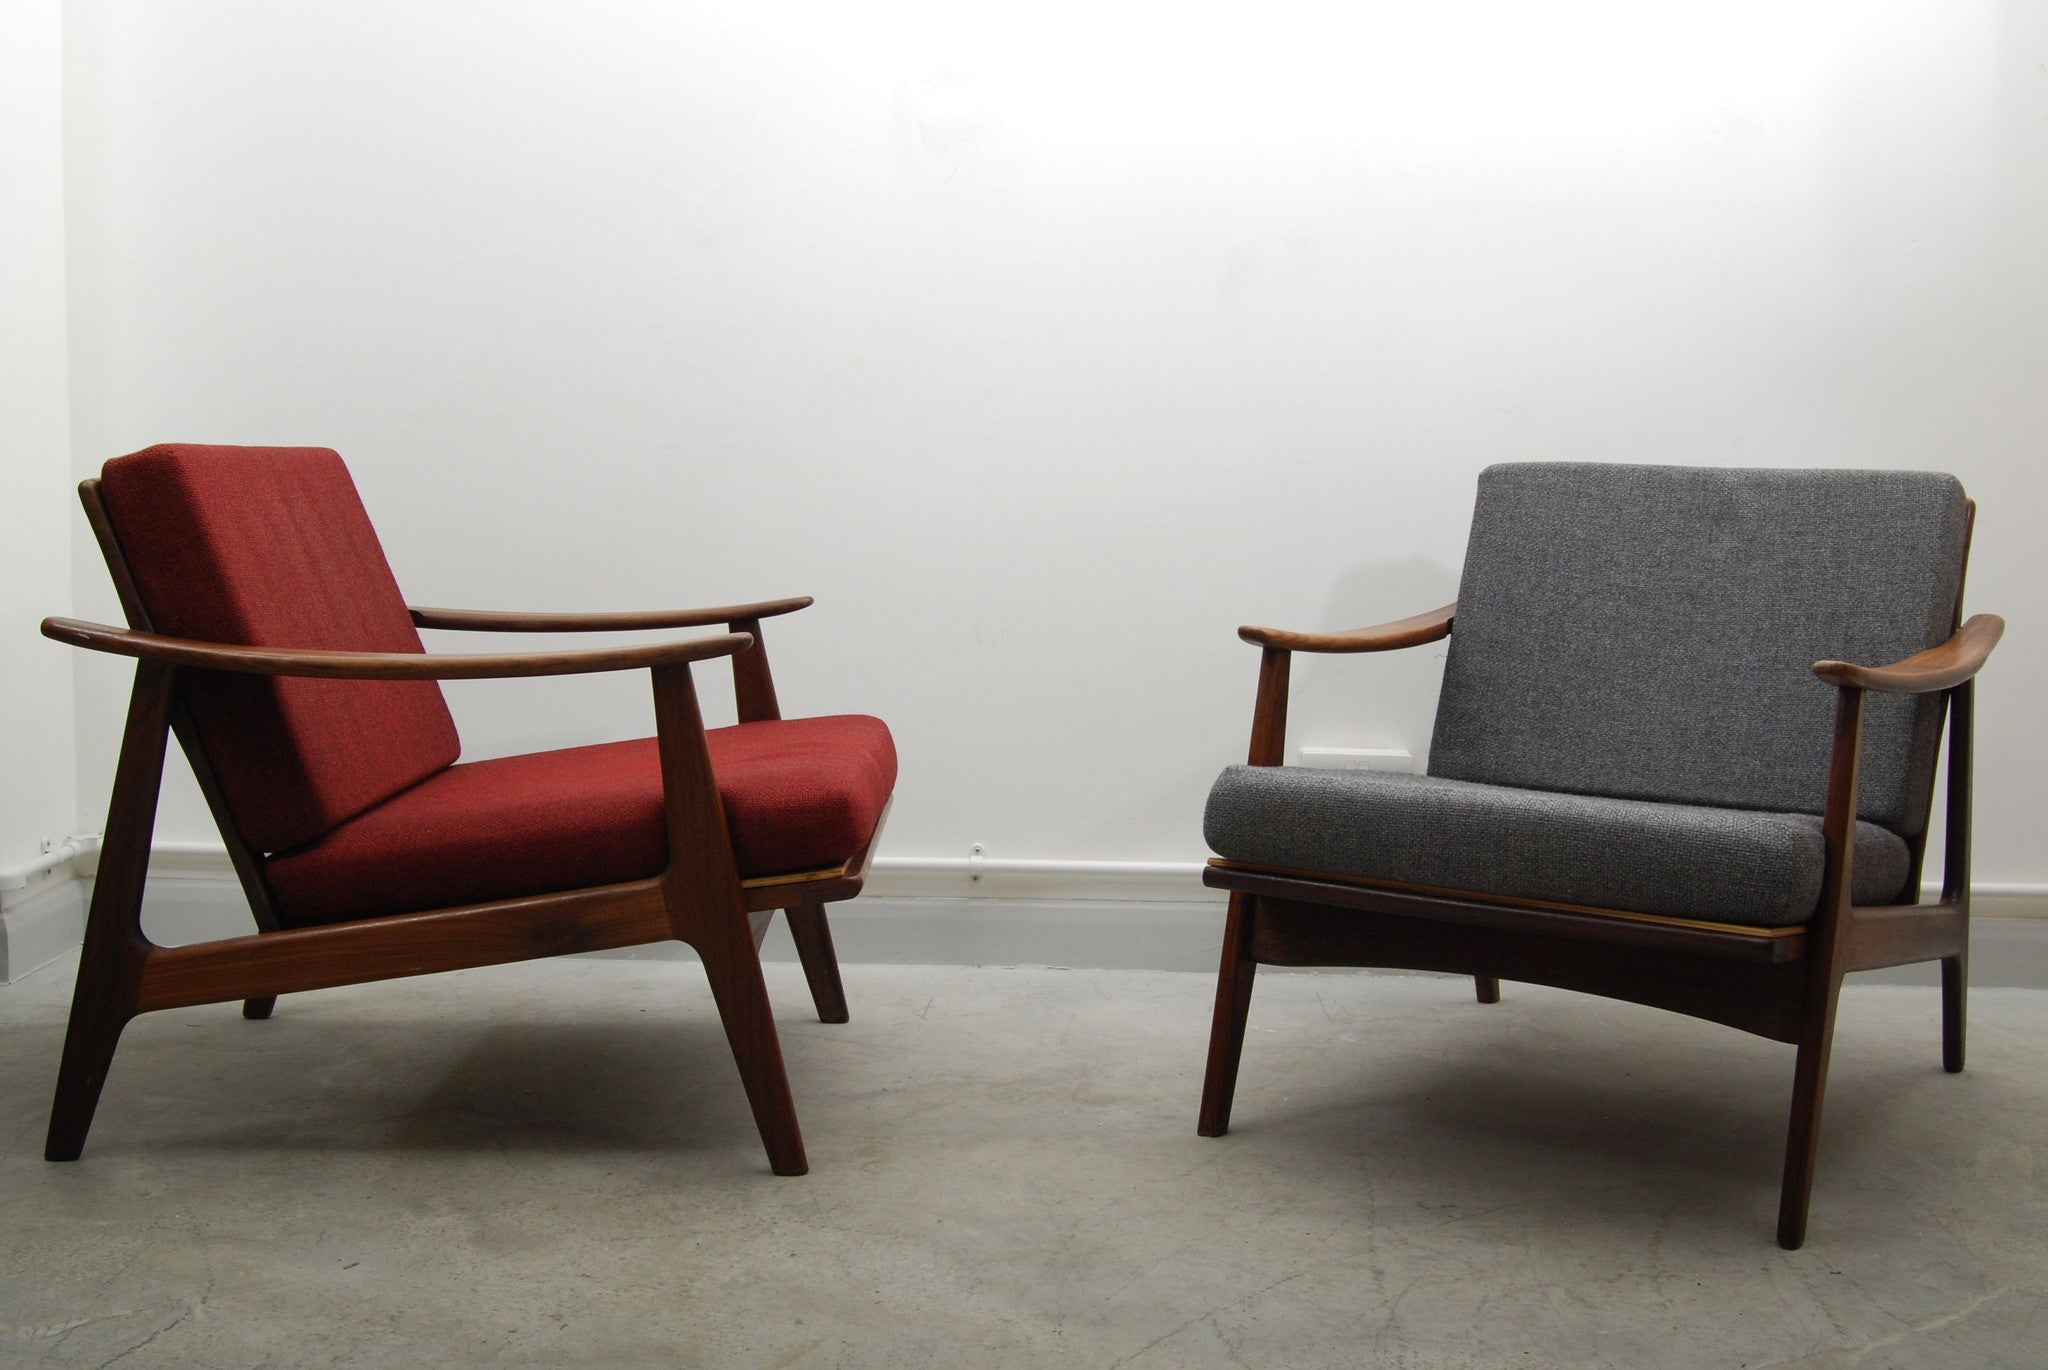 Pair of teak loungers